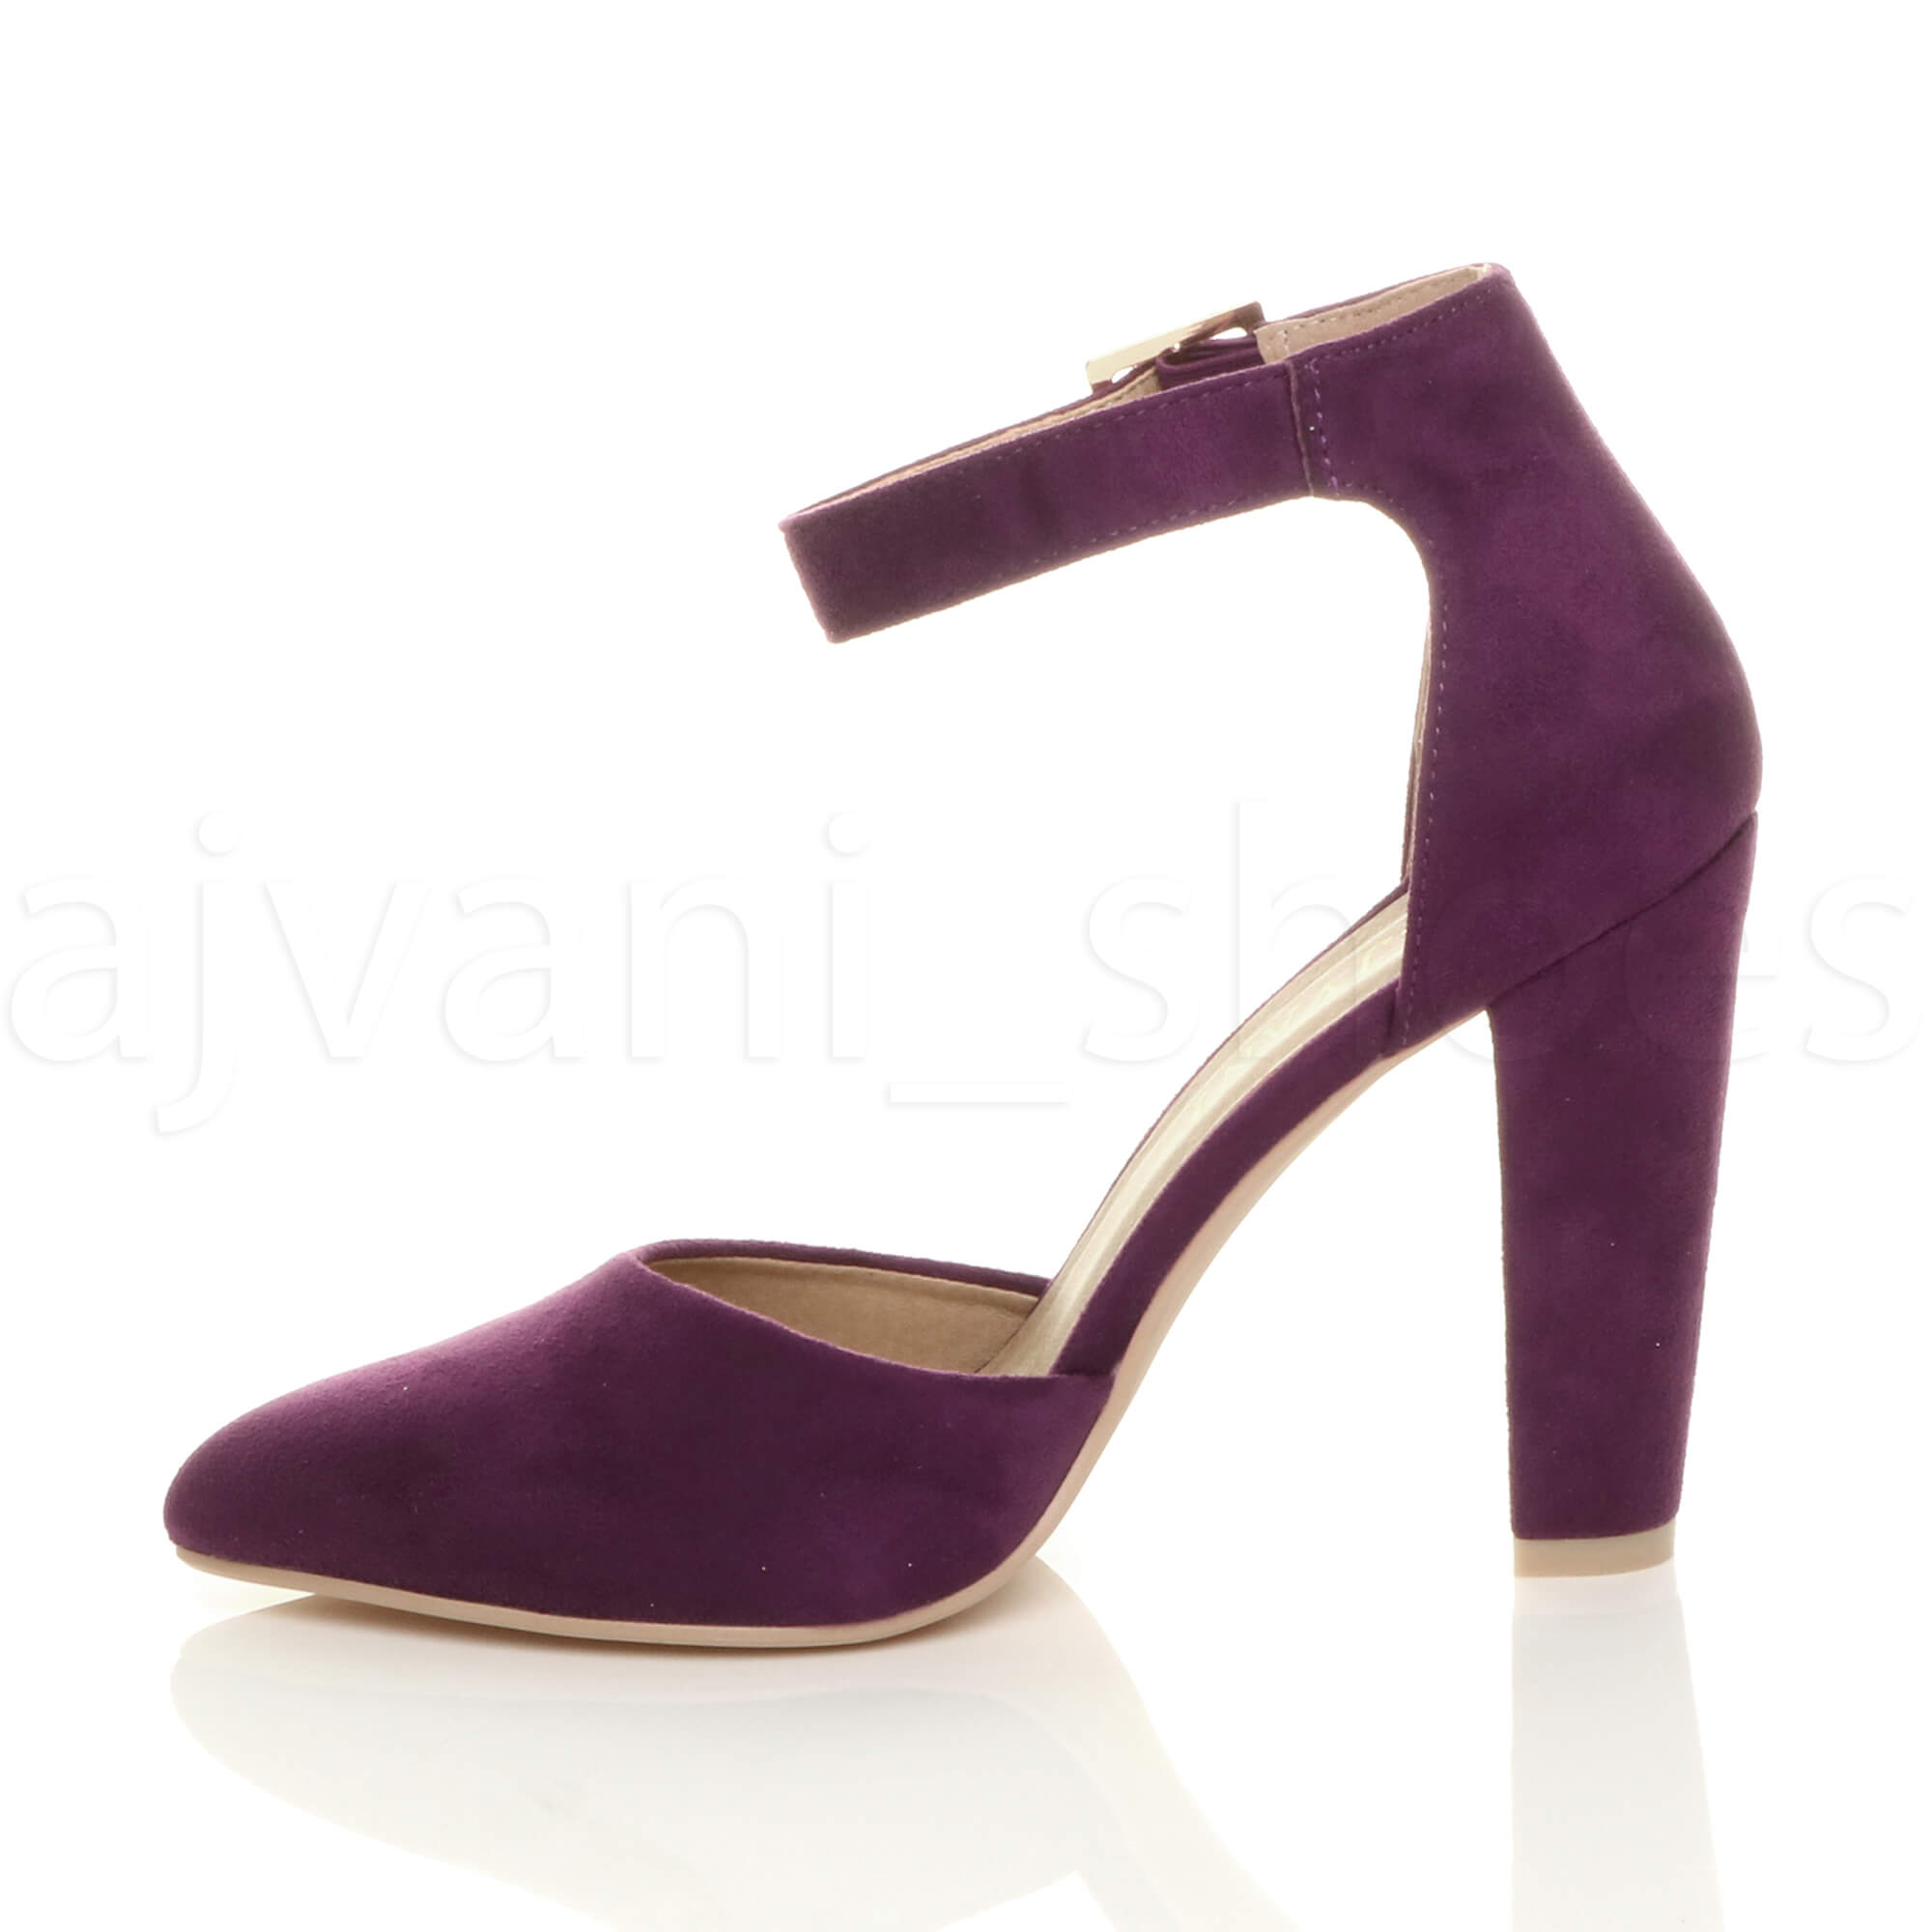 WOMENS-LADIES-HIGH-BLOCK-HEEL-ANKLE-STRAP-BUCKLE-POINTED-COURT-SHOES-SIZE thumbnail 123